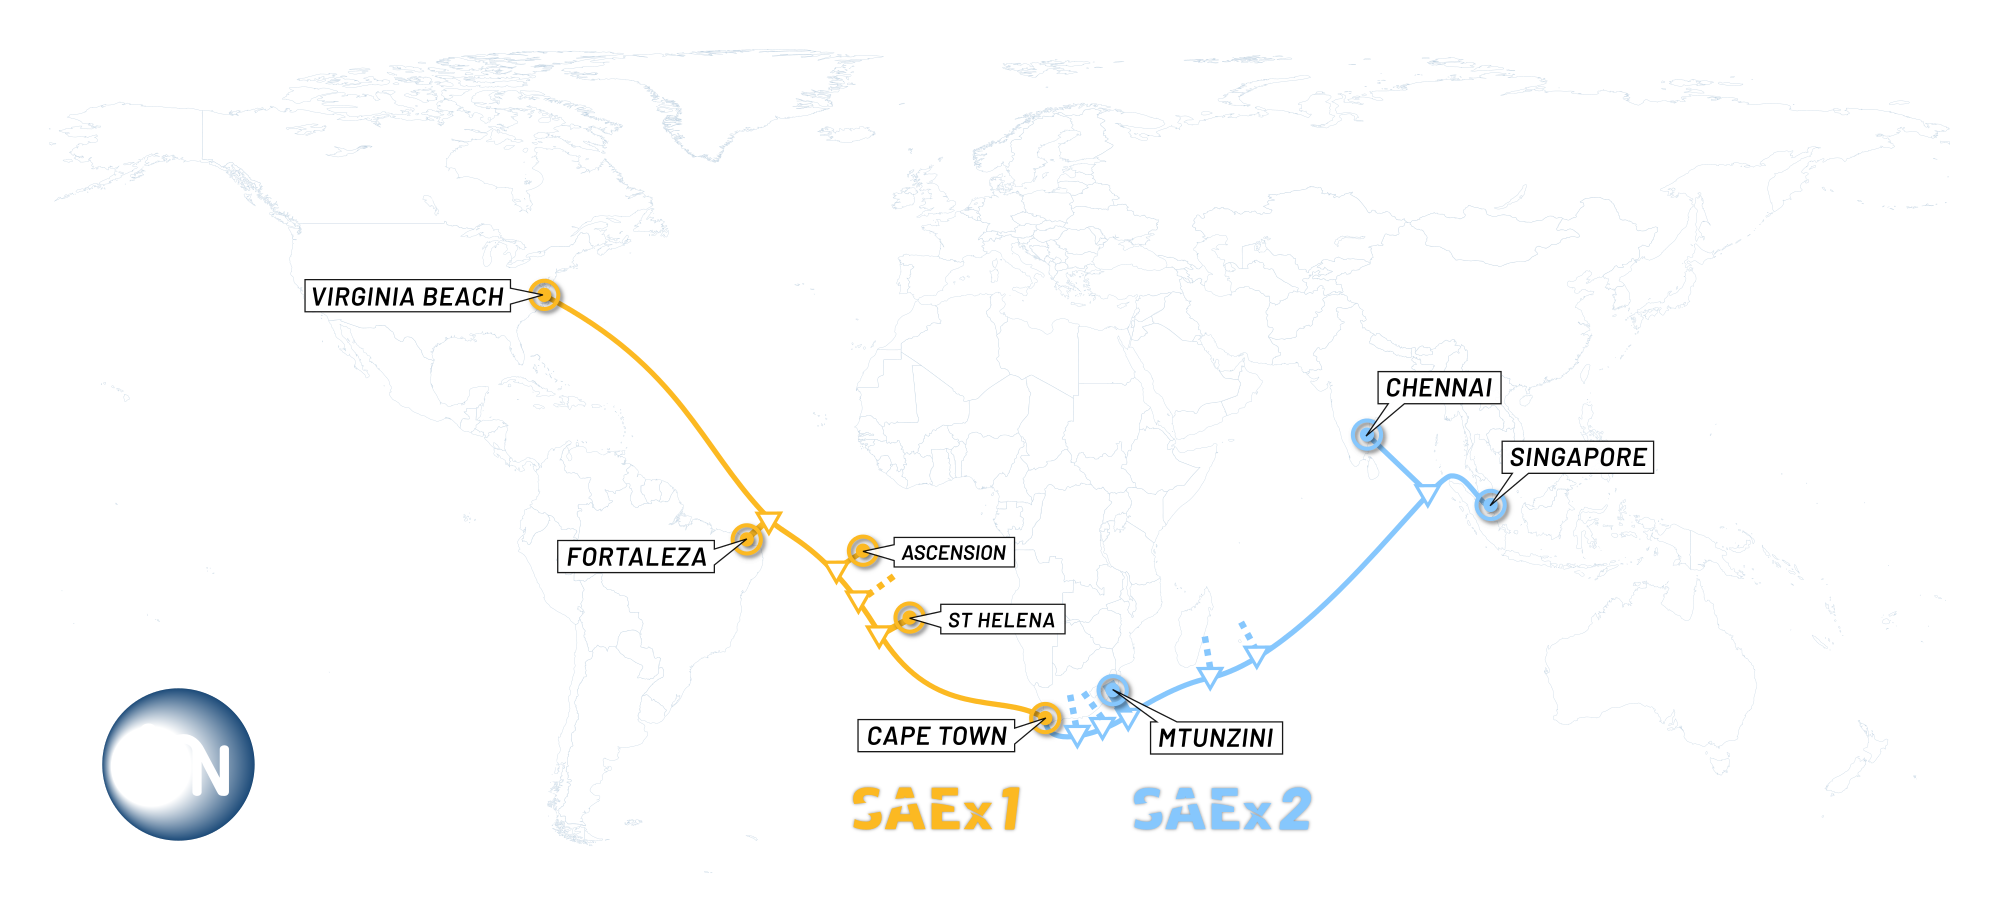 SAEx and Alcatel Submarine Networks Begin Survey for a New